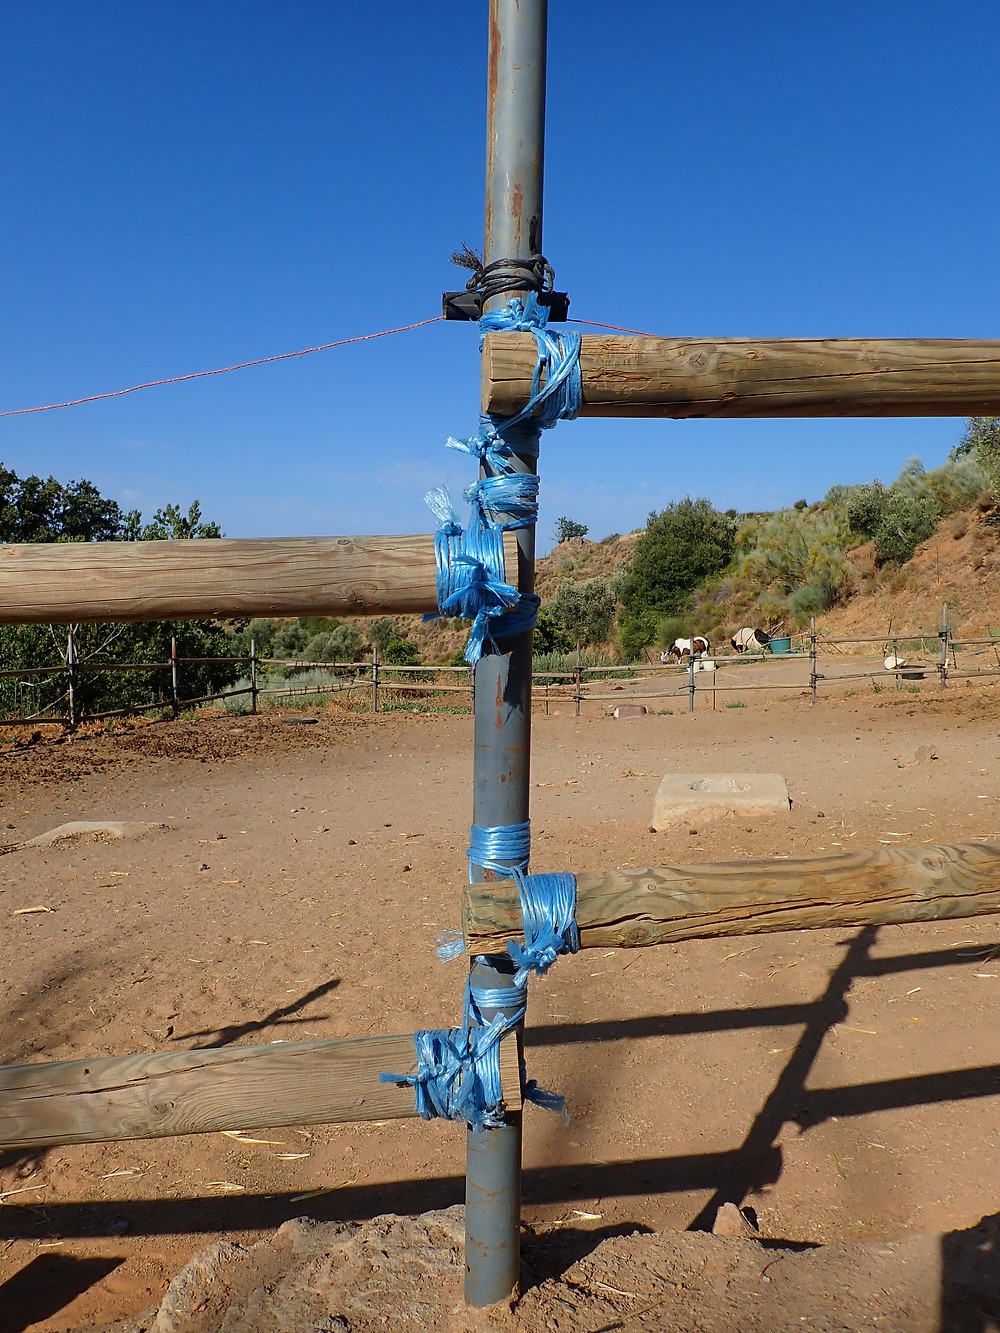 A fence post, repaired with bail string